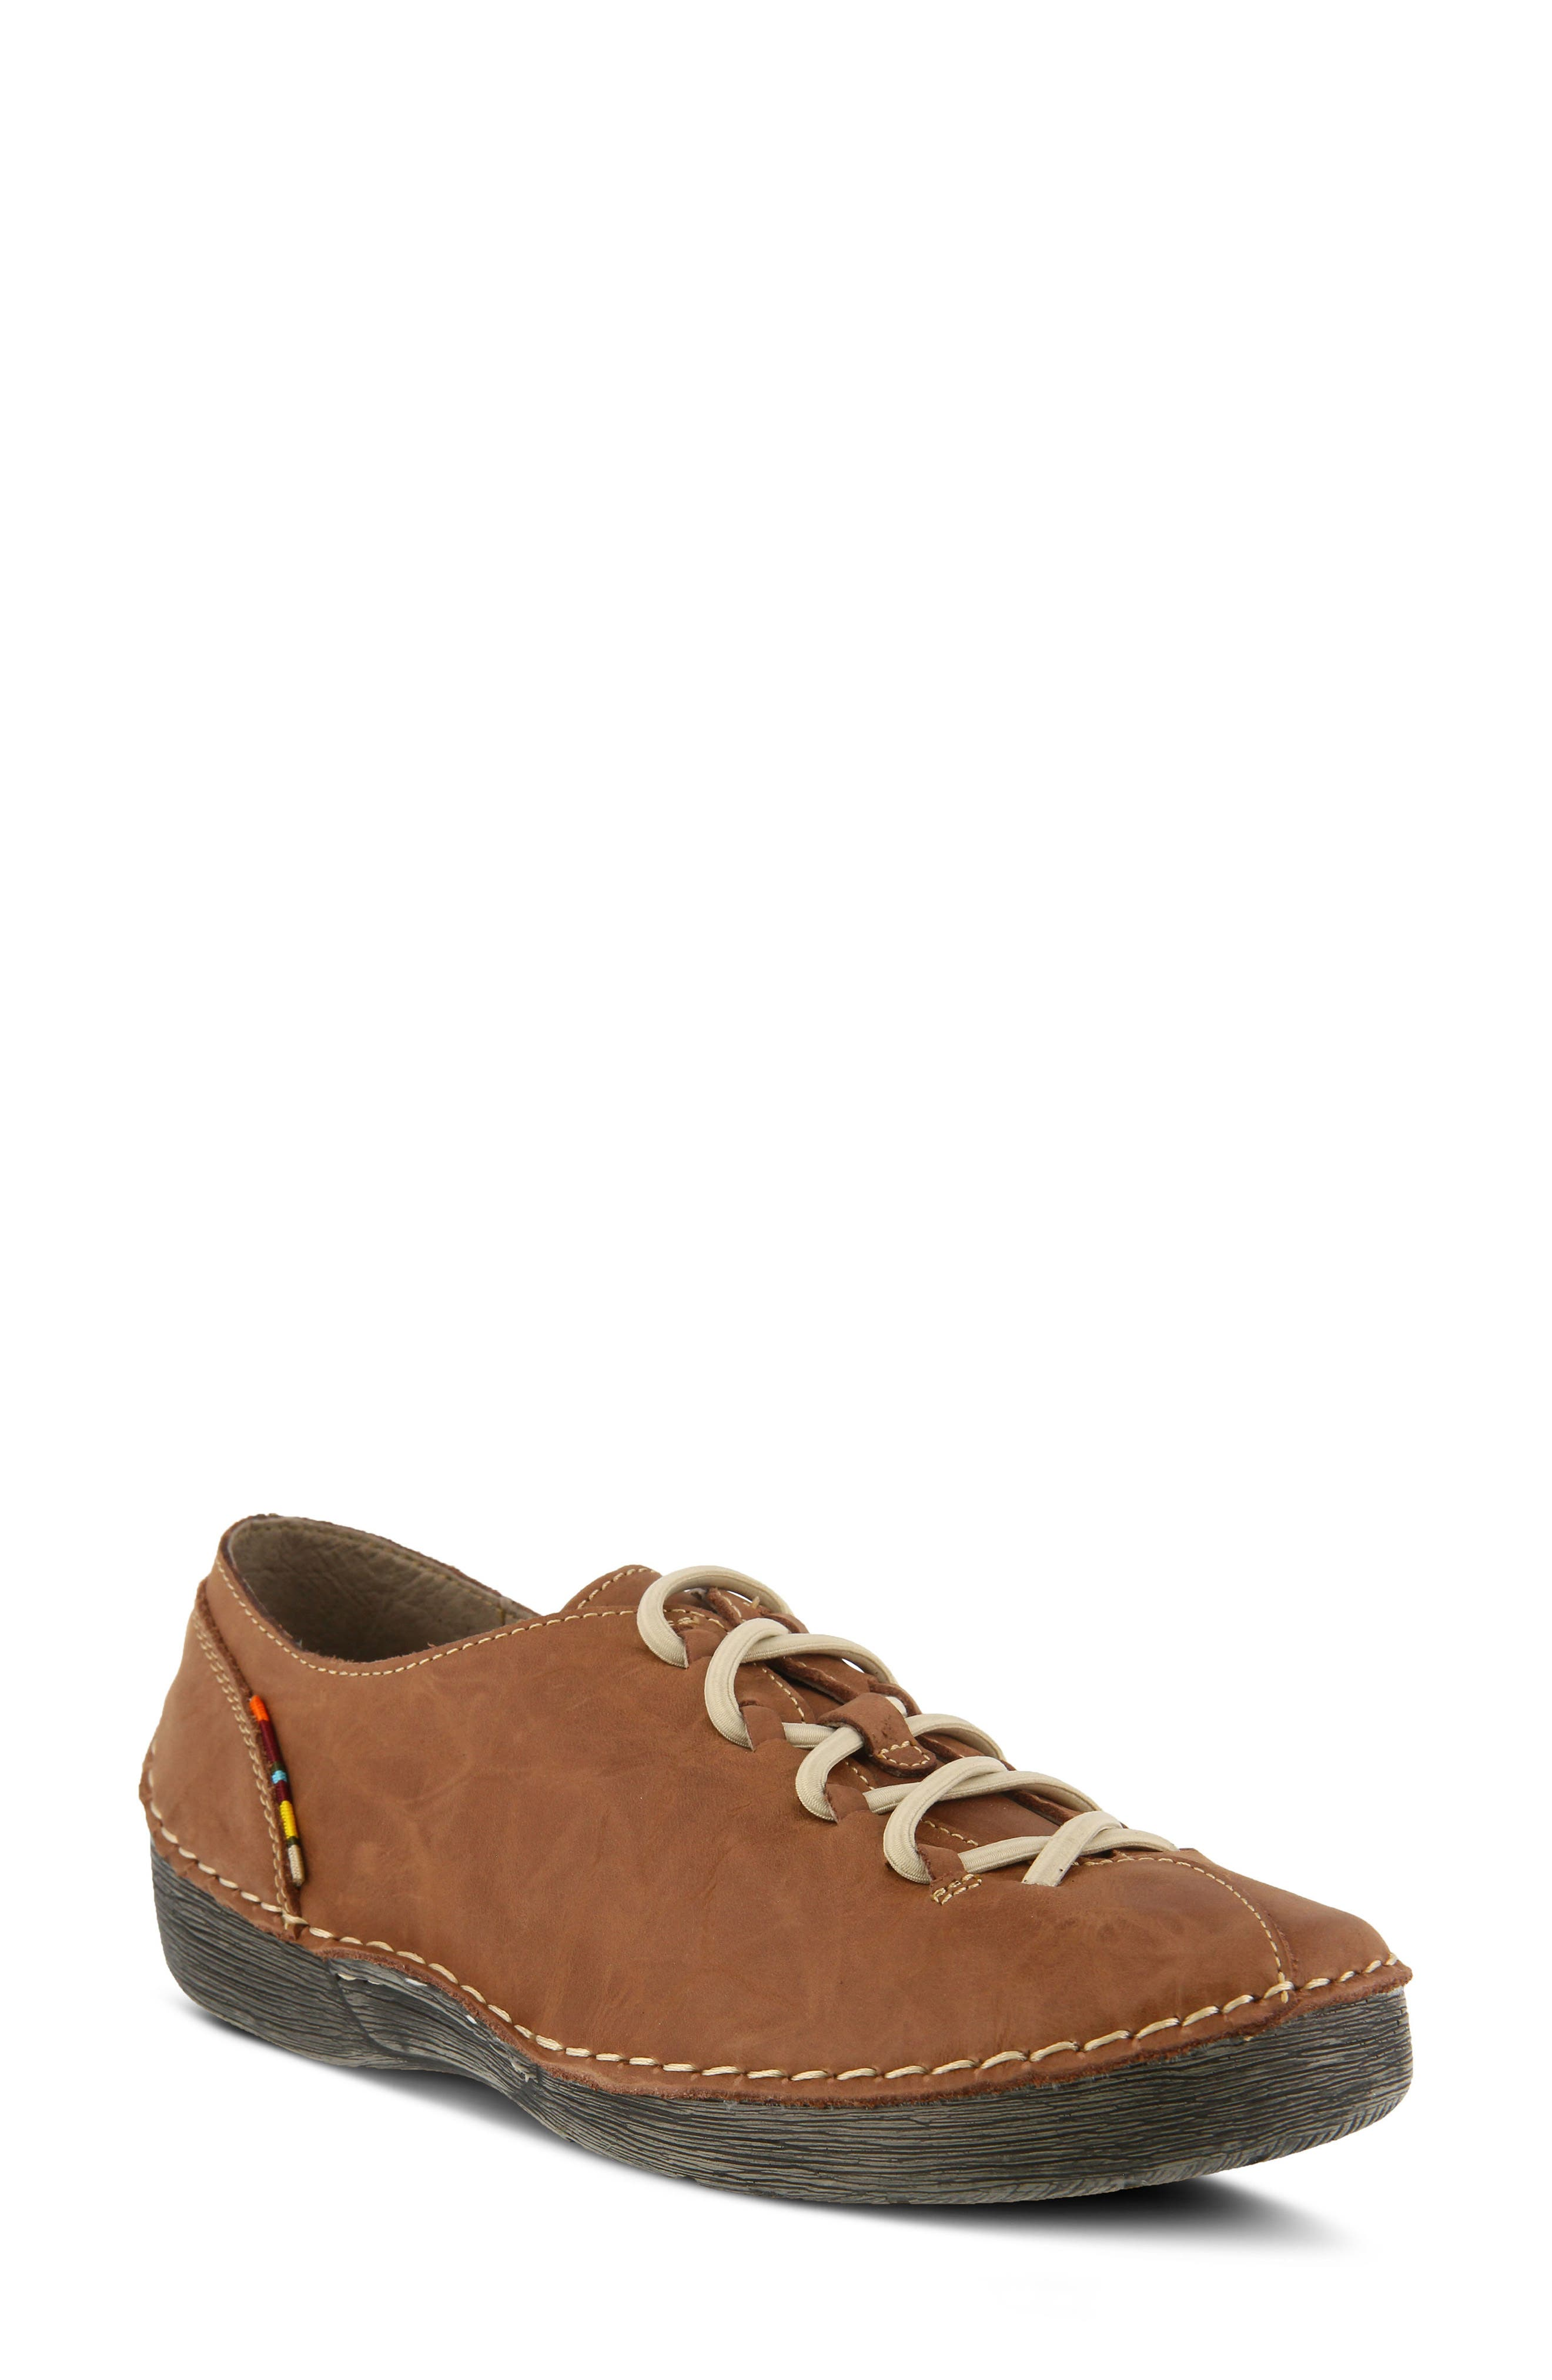 Carhop Sneaker,                         Main,                         color, BROWN LEATHER